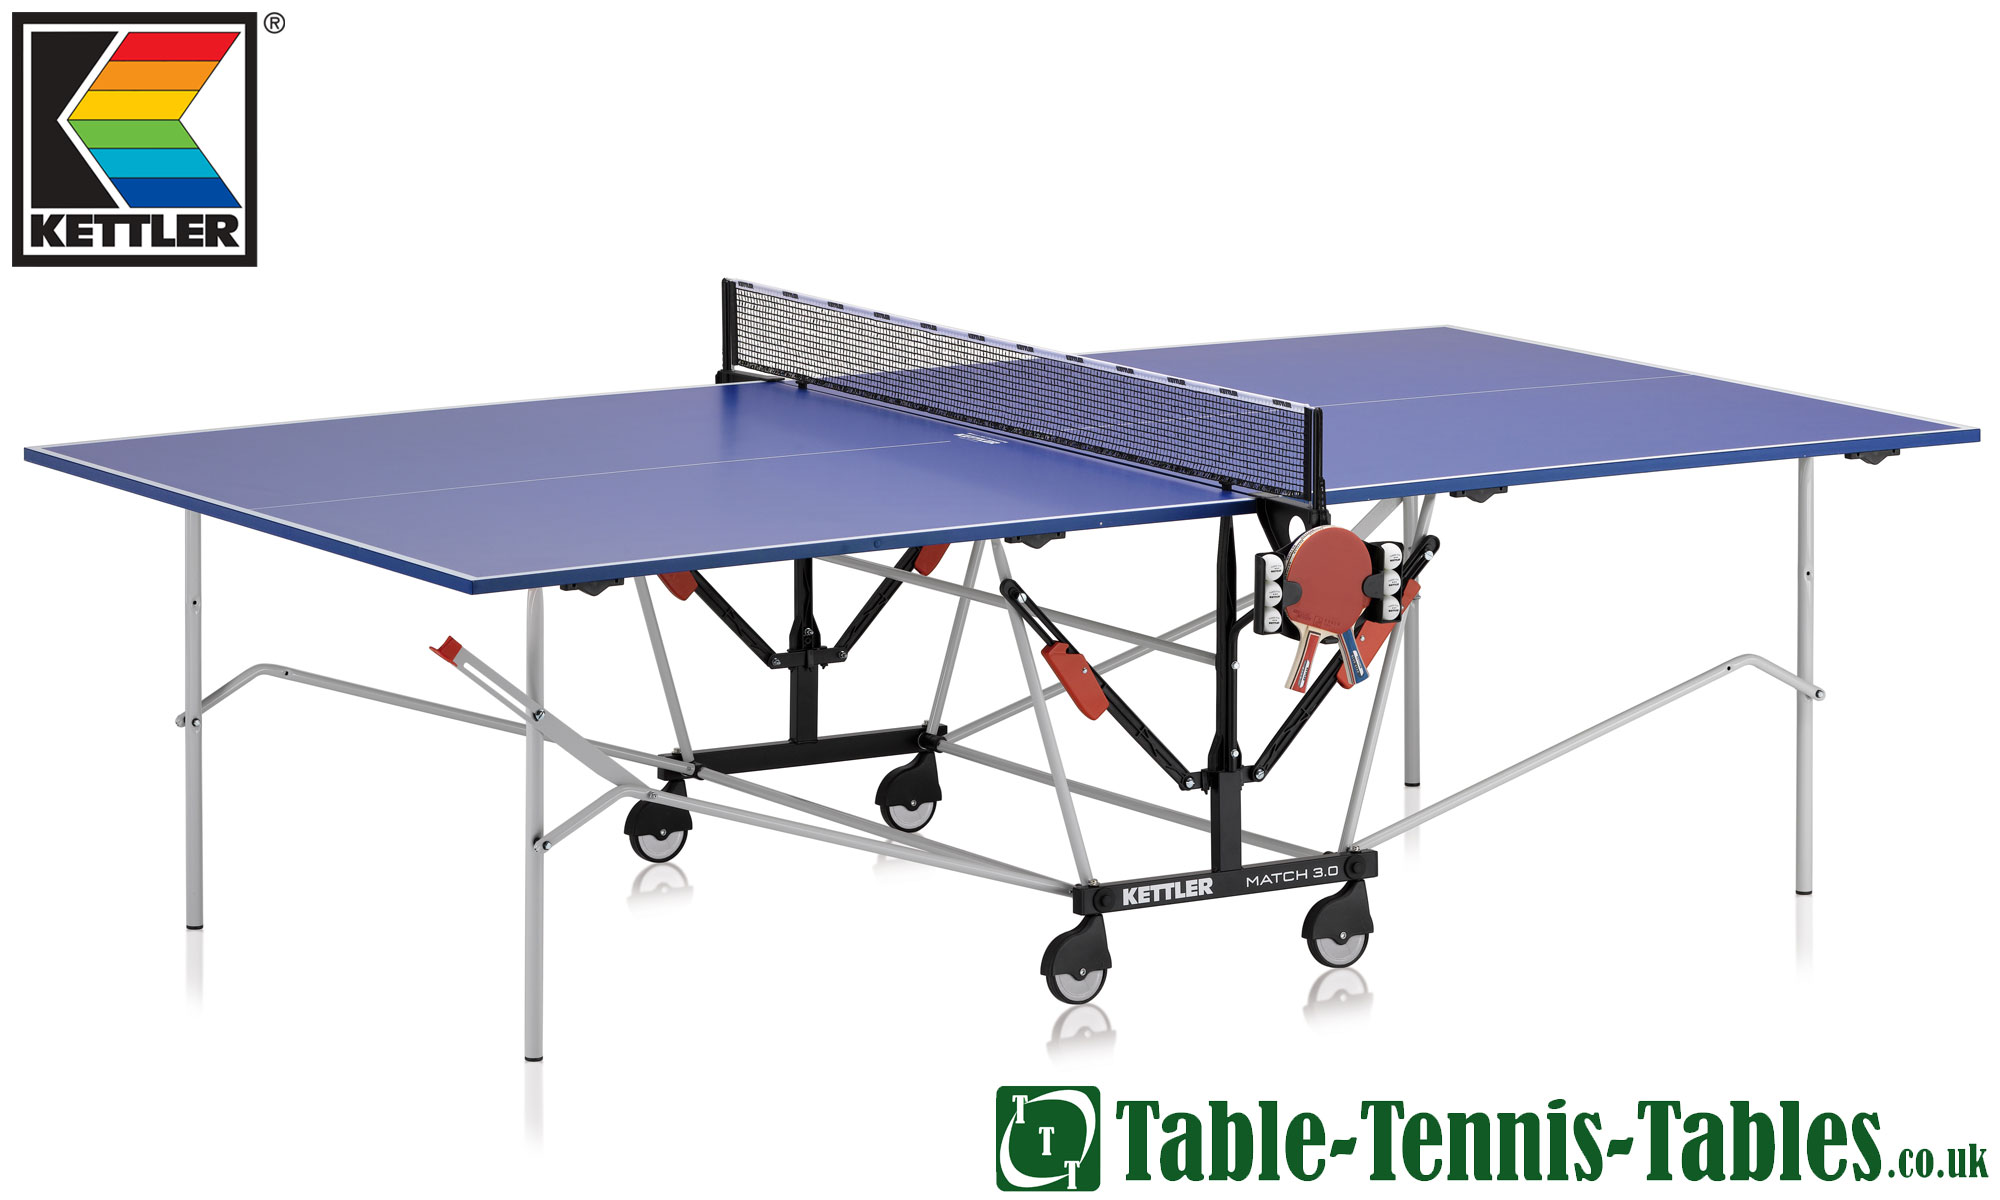 Kettler match 3 0 indoor discontinued - Full size table tennis table dimensions ...